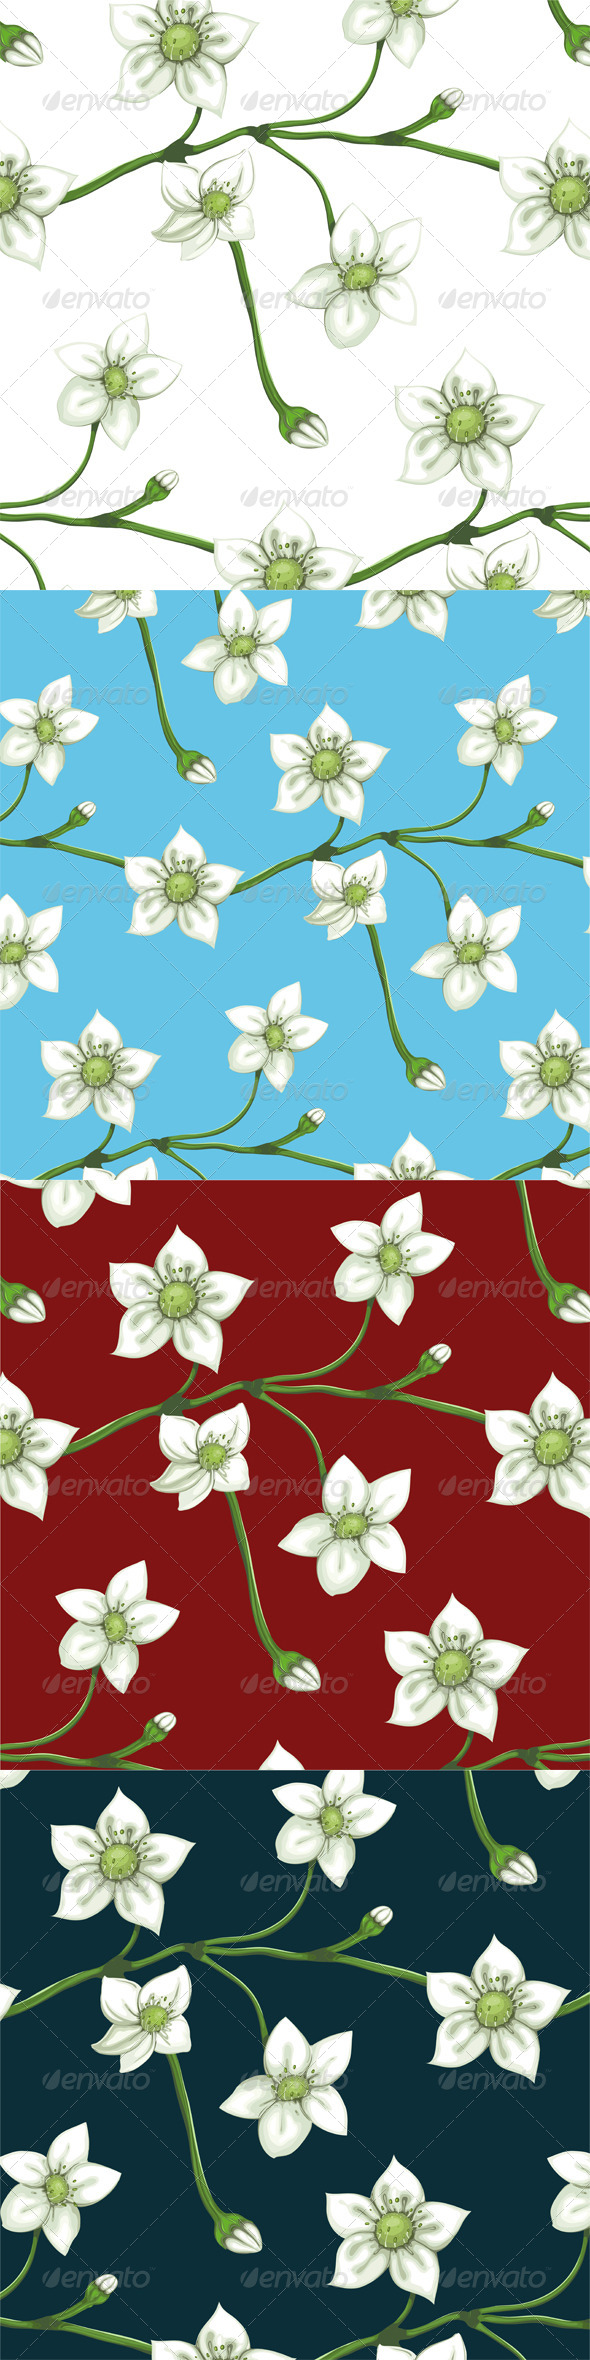 GraphicRiver White Flowers on Twig Seamless Pattern 4350210